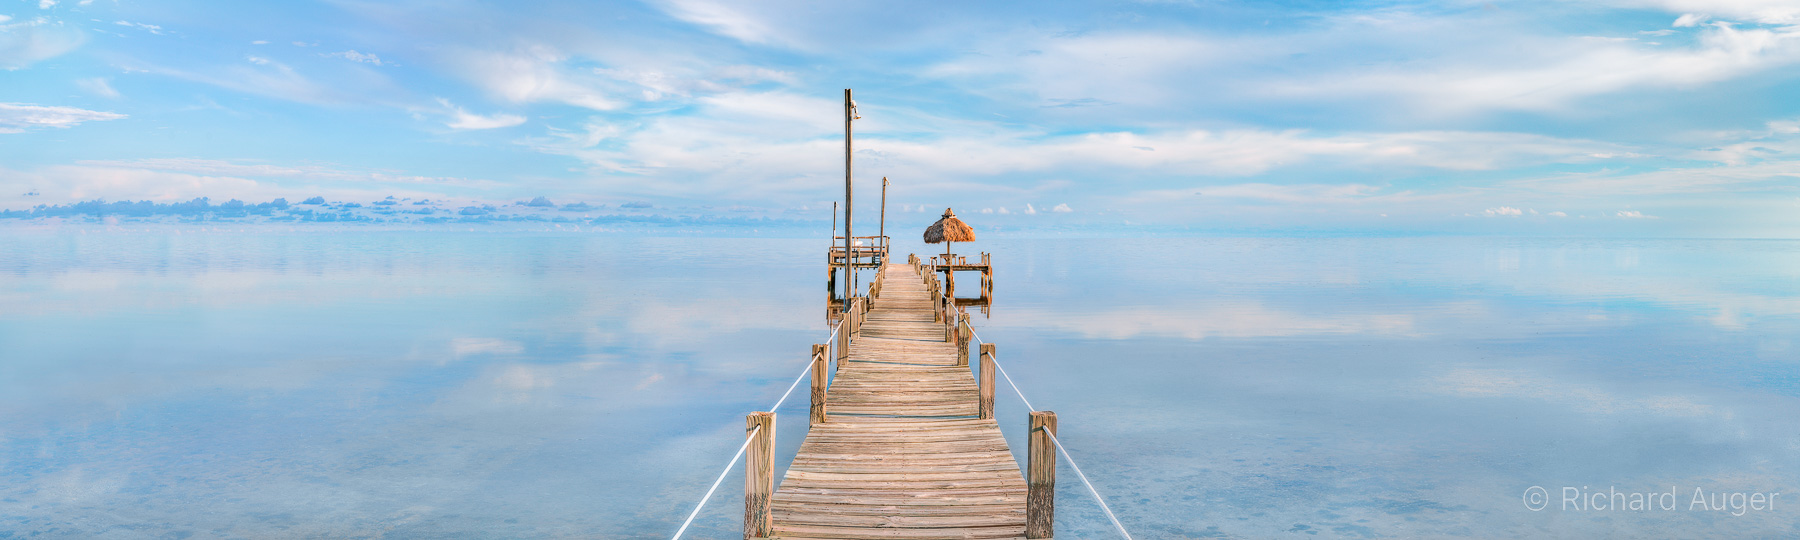 dock, Florida Keys, Islamorada, blue, panorama, photographer, photography